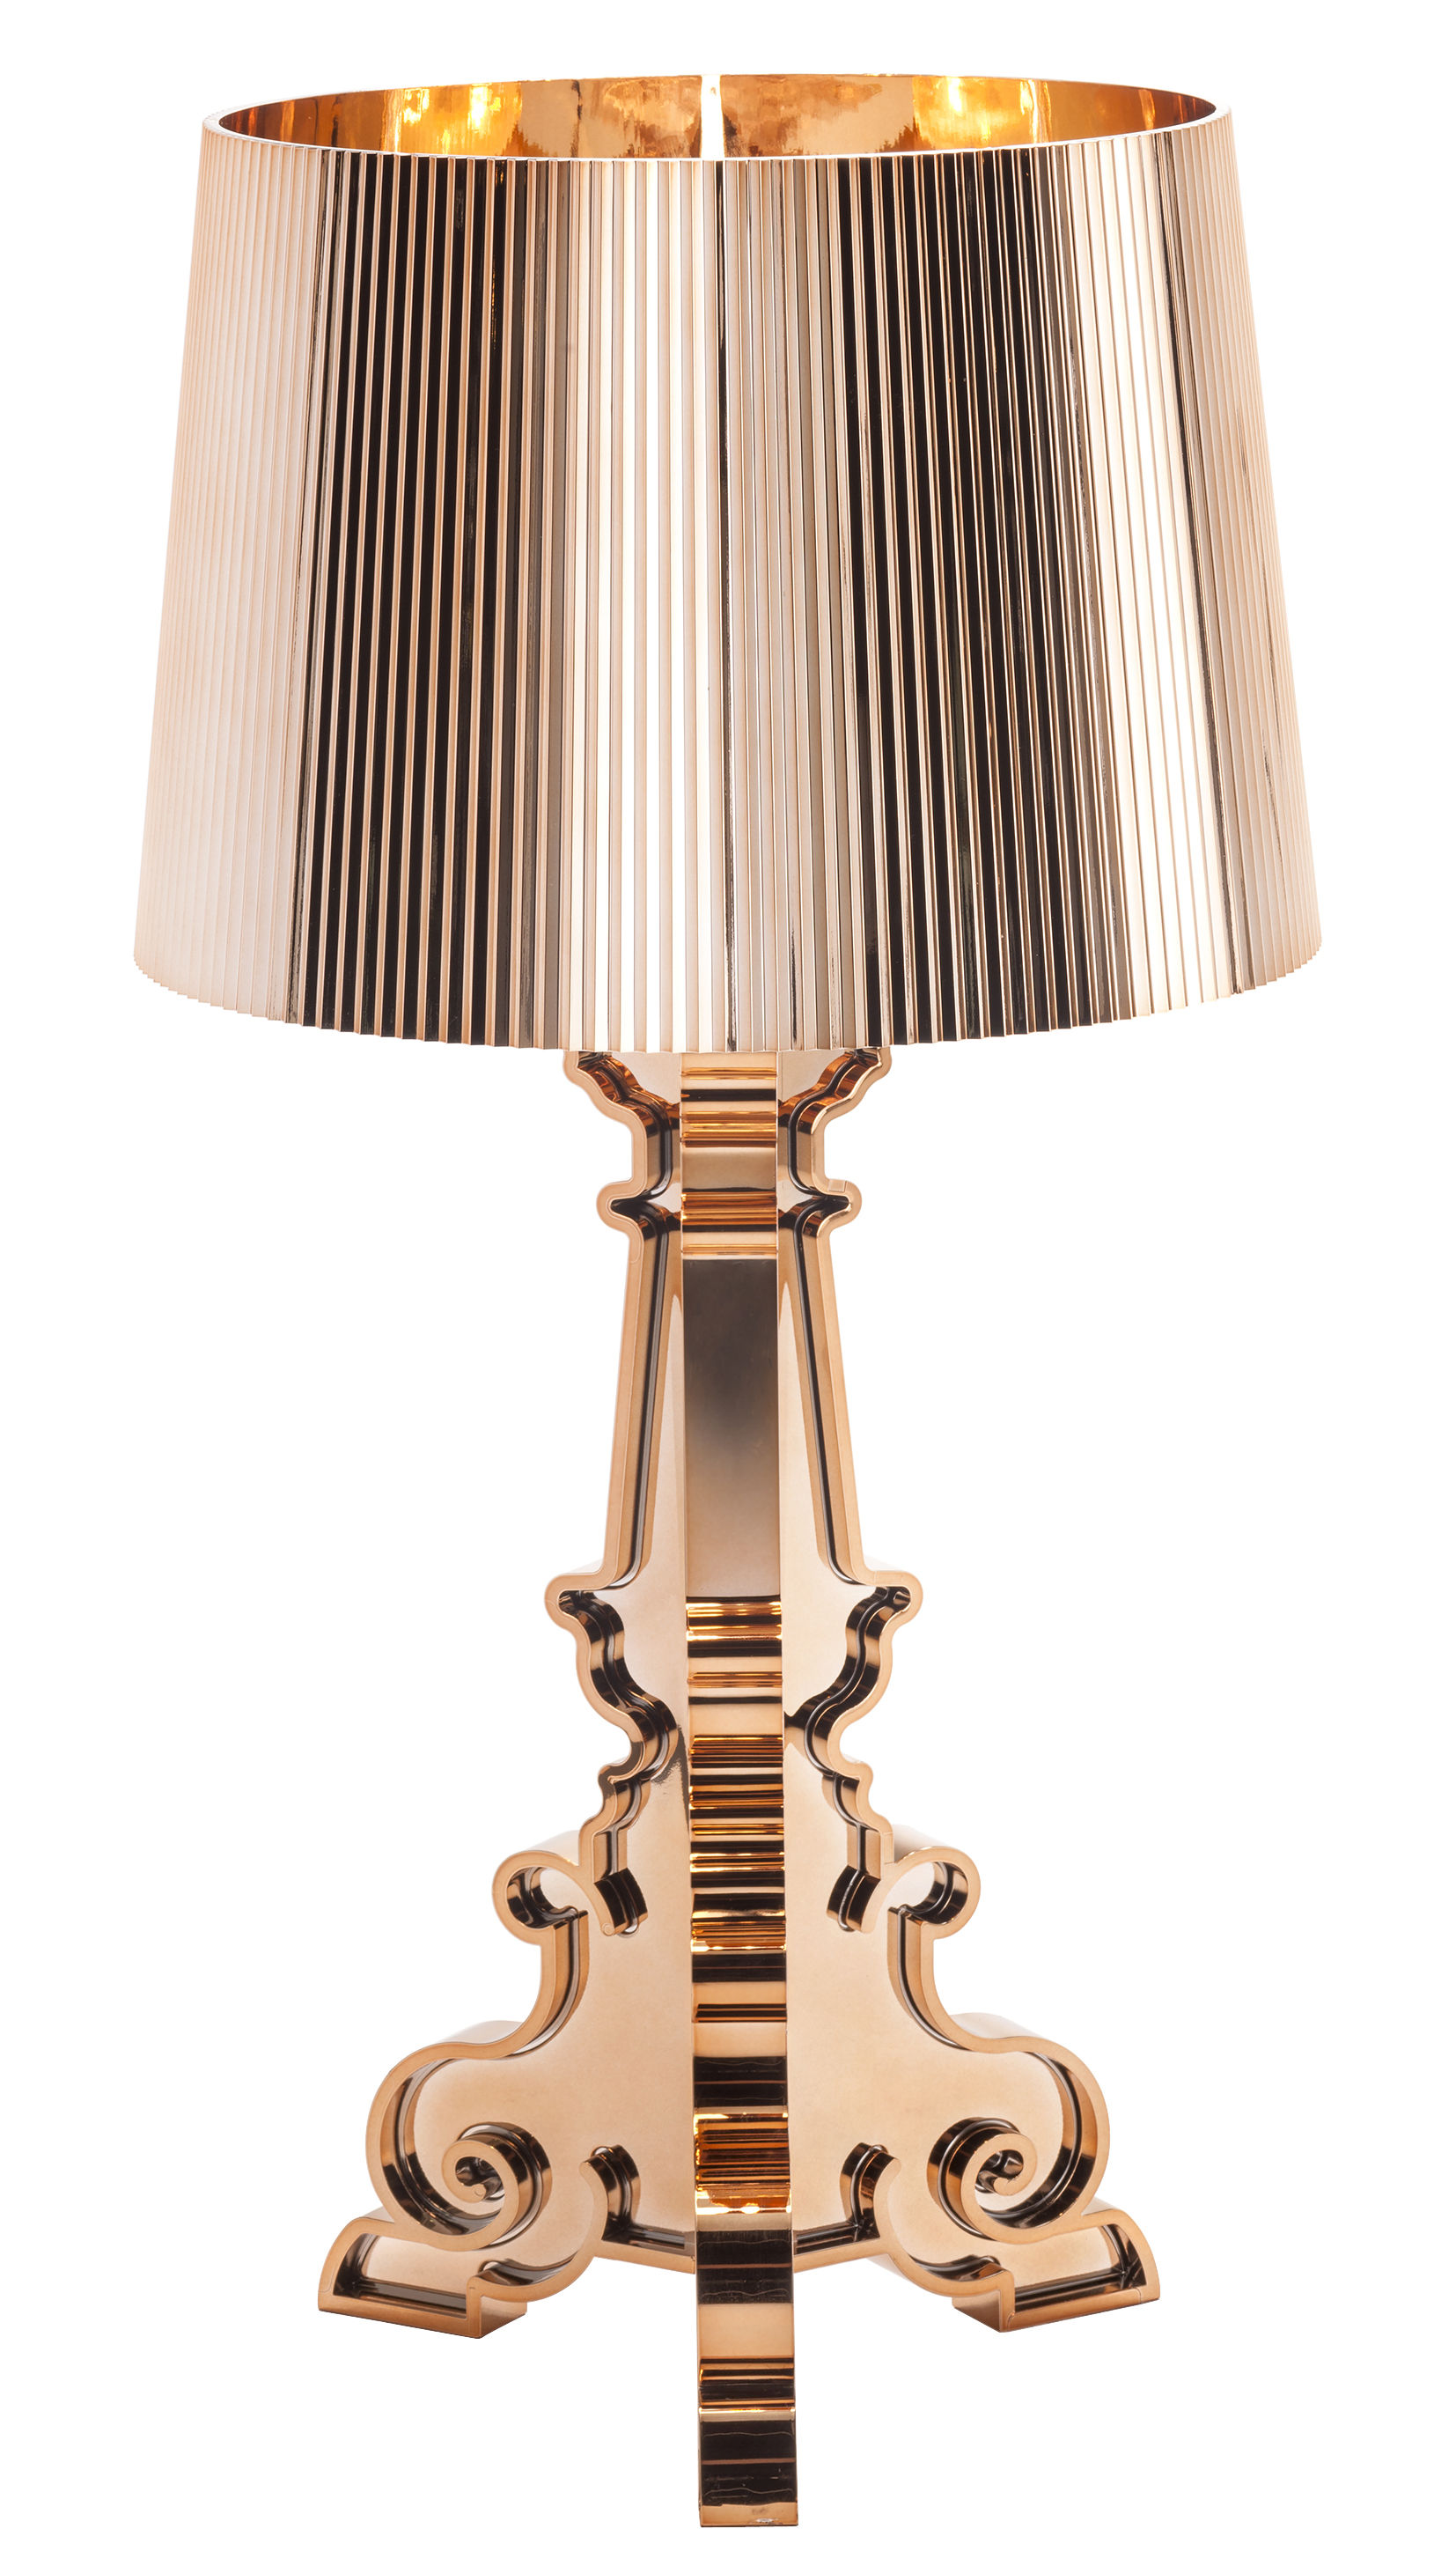 Lampe Kartell Lampe De Table Bourgie Kartell - Cuivre | Made In Design